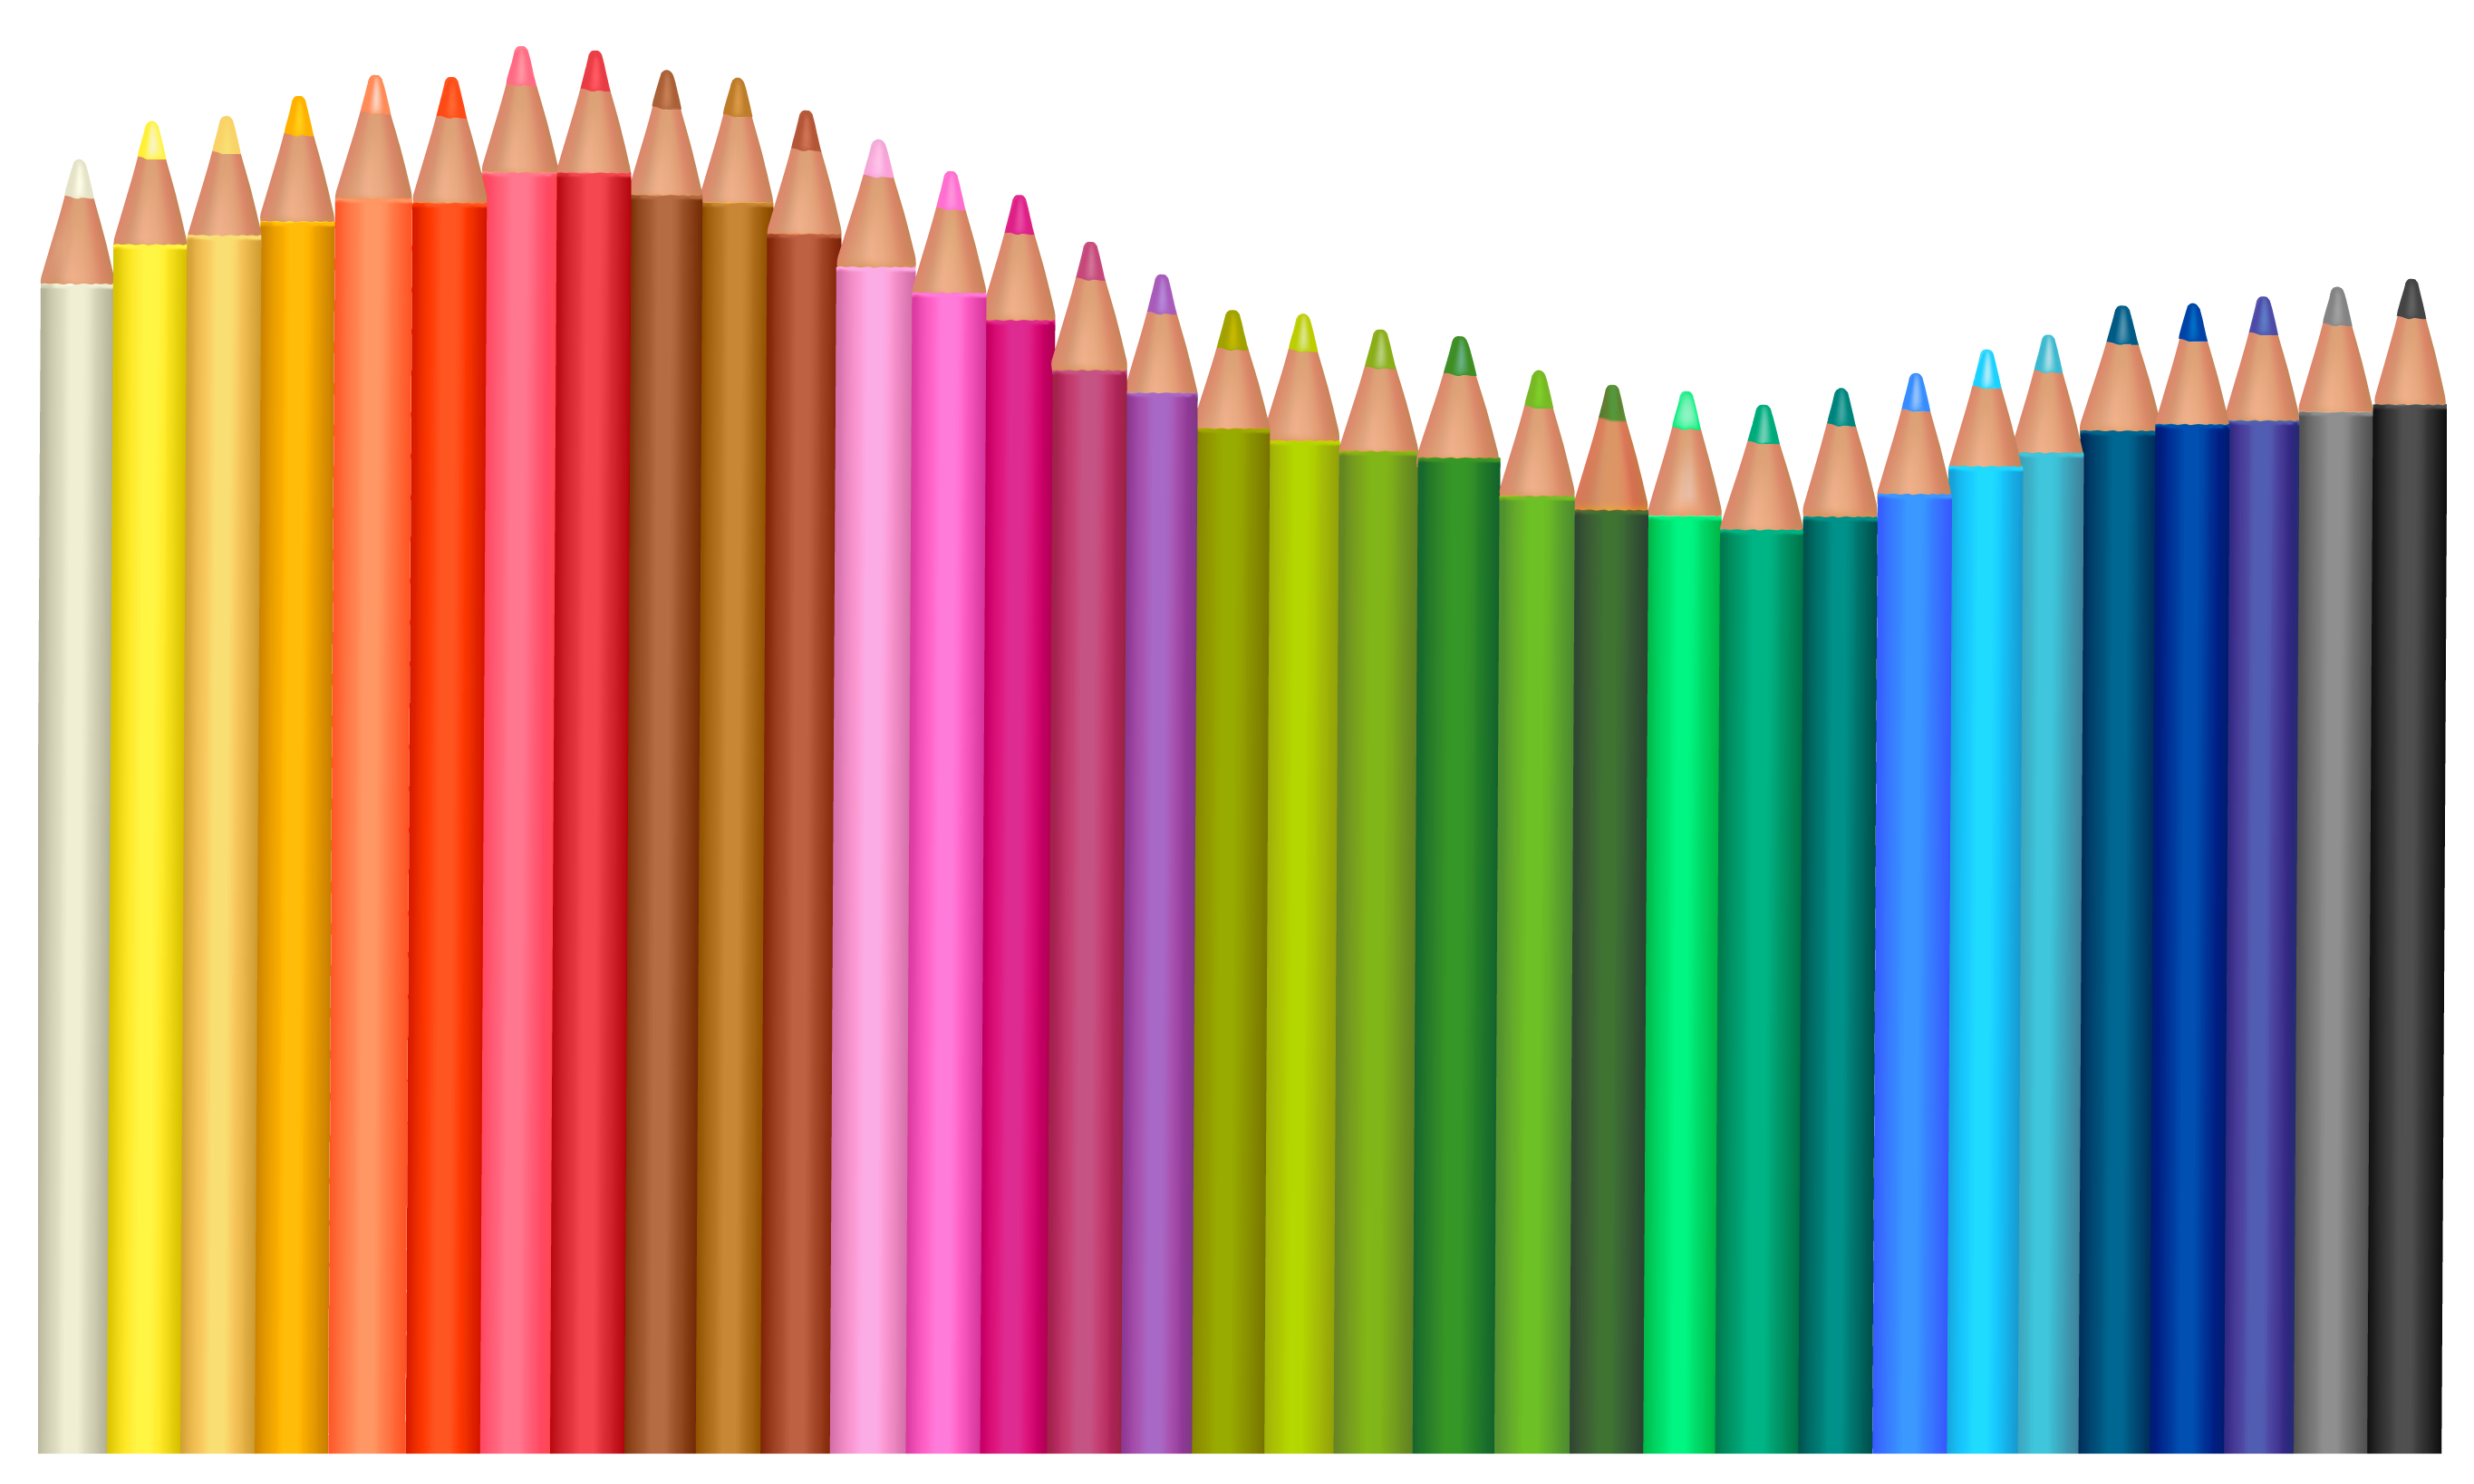 Transparent pencils png vector. Pencil clipart stationery